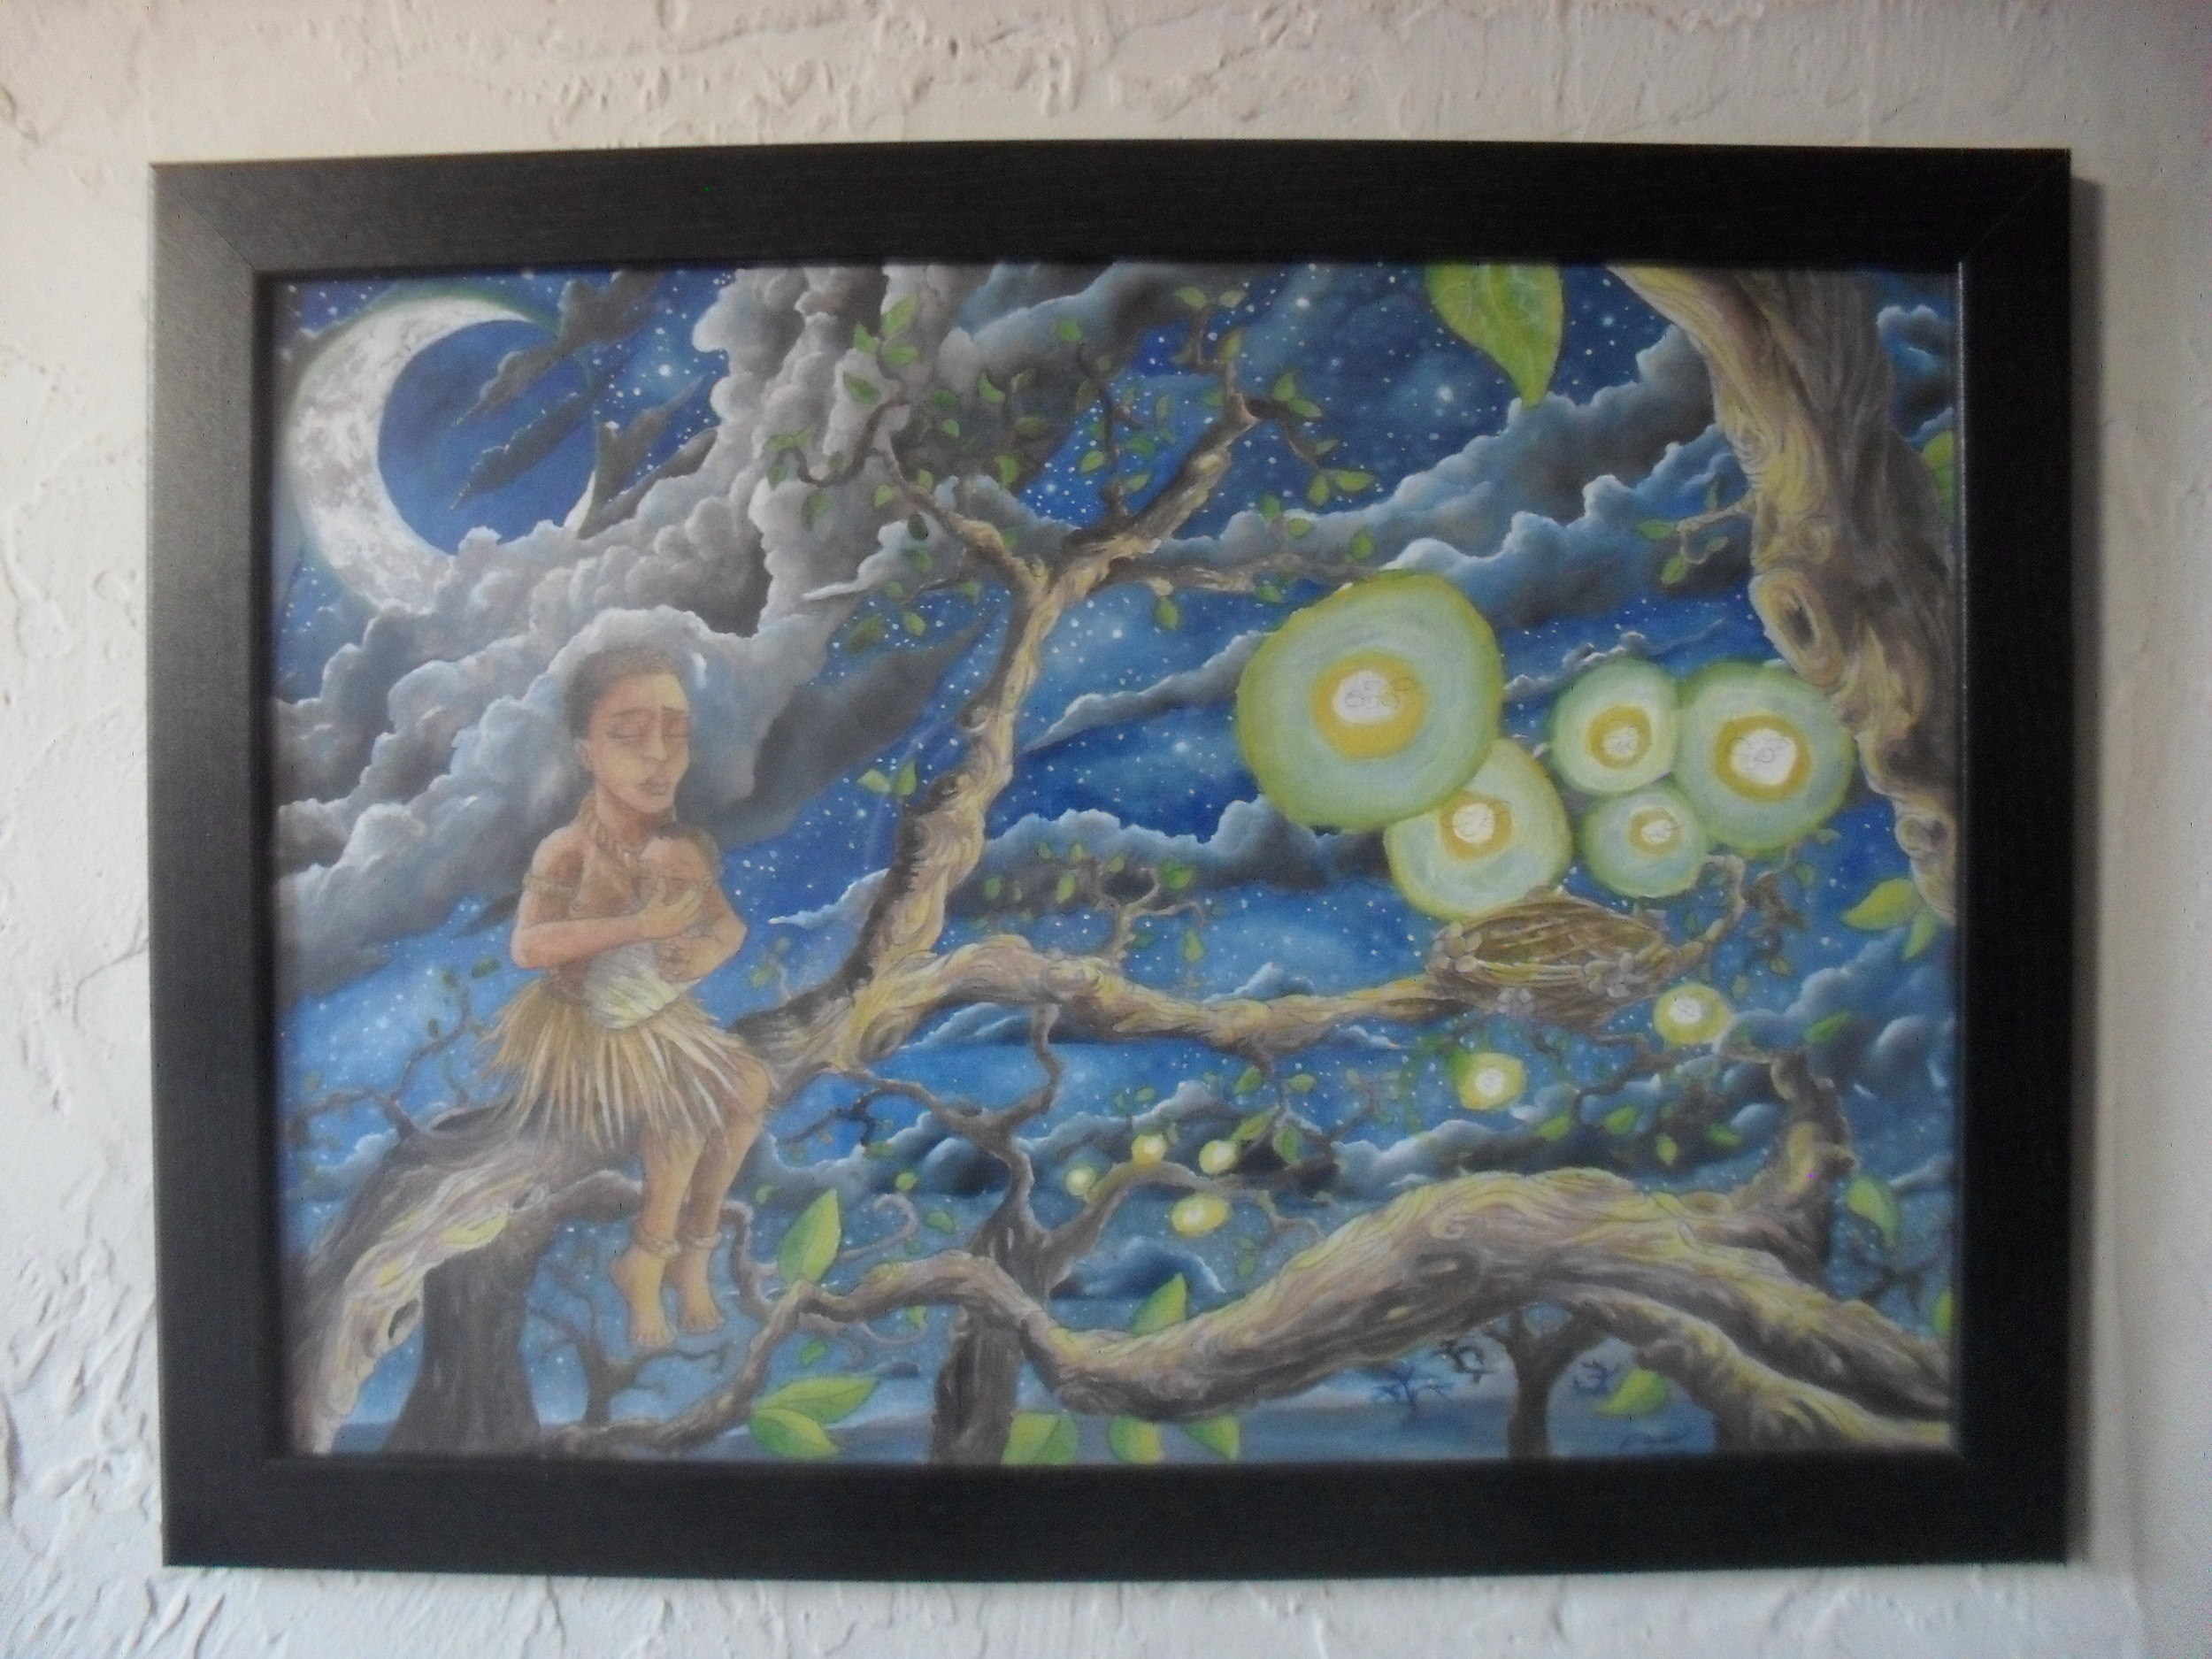 'Eve' Framed Original ~Pencil & Watercolour on A3 Primed Birch Plywood ~£250 plus p+p